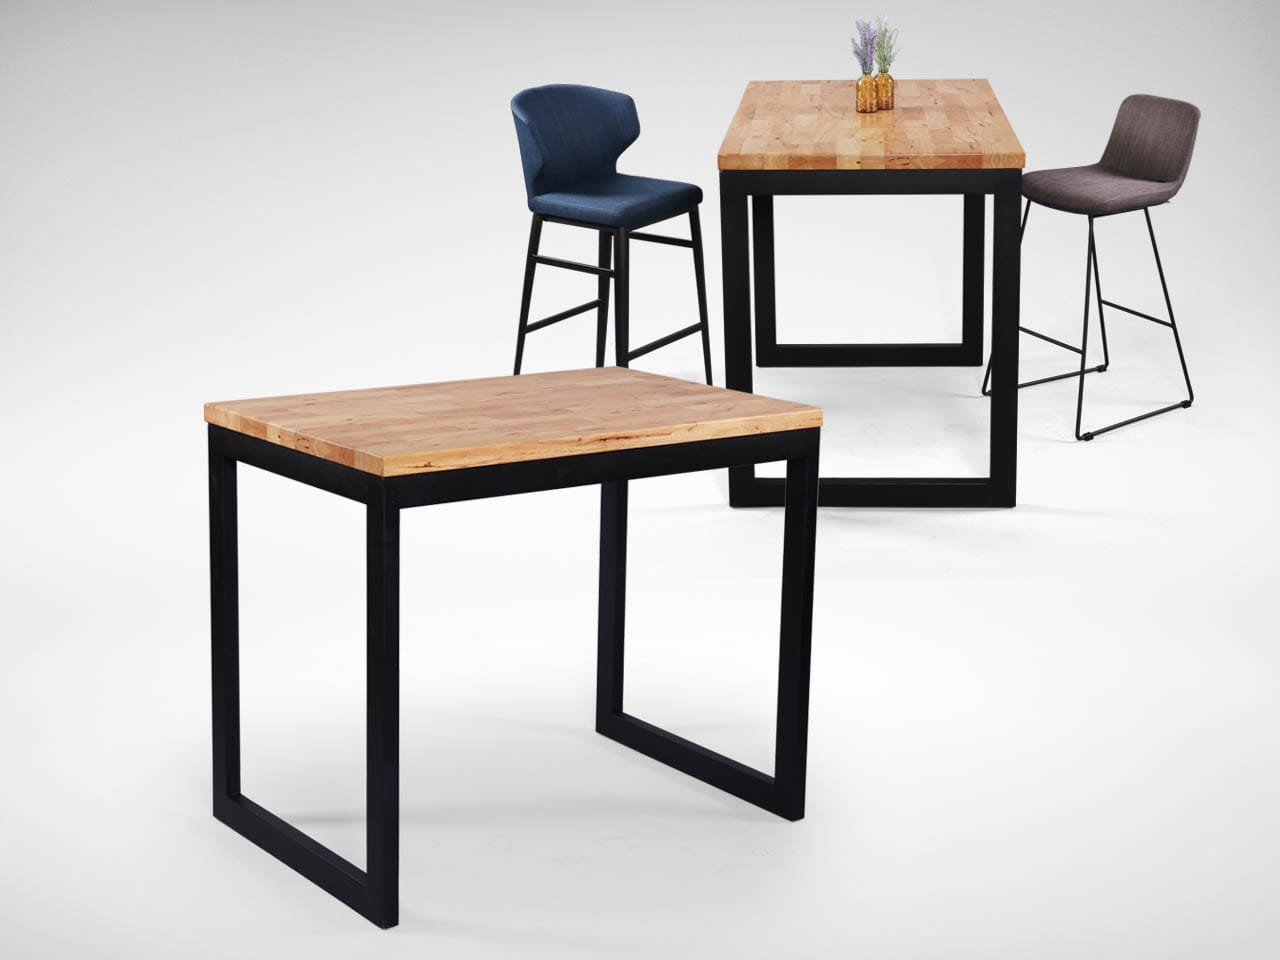 top furniture makers. Top Furniture Makers. Uni Bar Table W/ Butcher \\u2013 Customisable Makers A